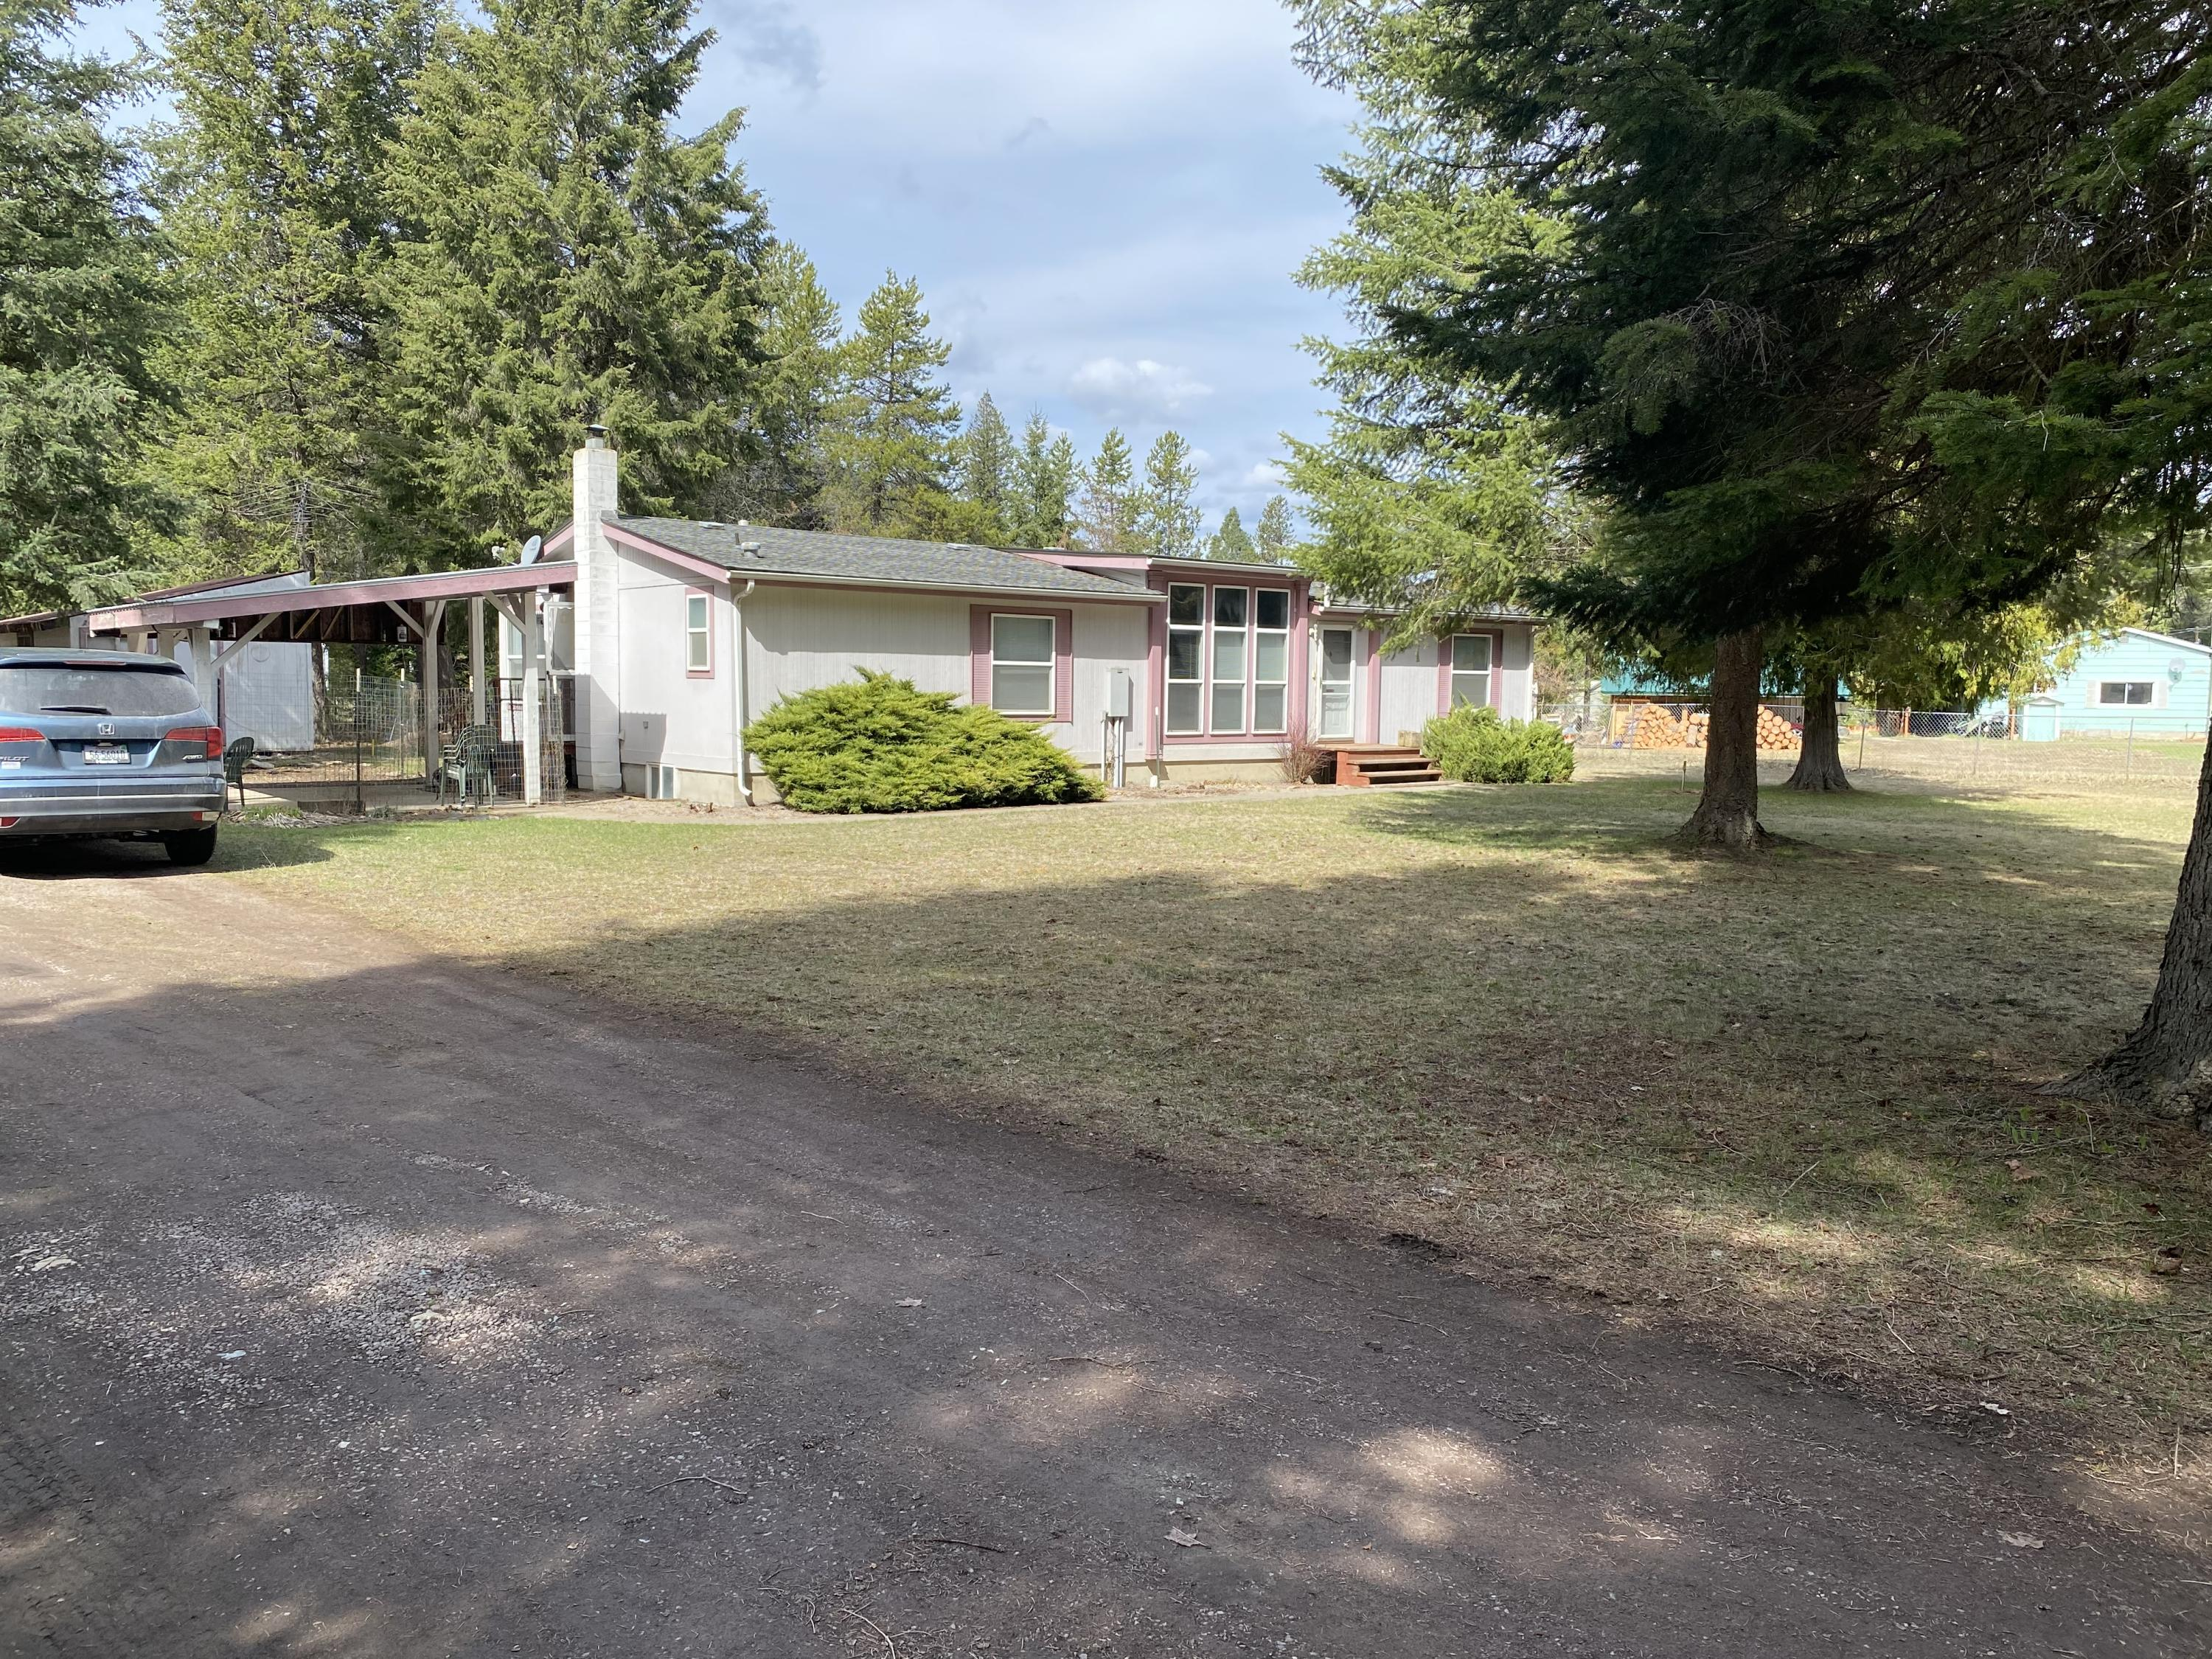 1997 Manufactured  home on a basement foundation.  This home has 3 bedrooms, 2 full baths and open floor plan.  The basement is a blank slate.  Home is de-titled and considered real property.  Nice level yard, 3 car garage and only 3 miles out of town.  BEING SOLD AS IS WITH NO WARRANTIES OR GUARANTEES.